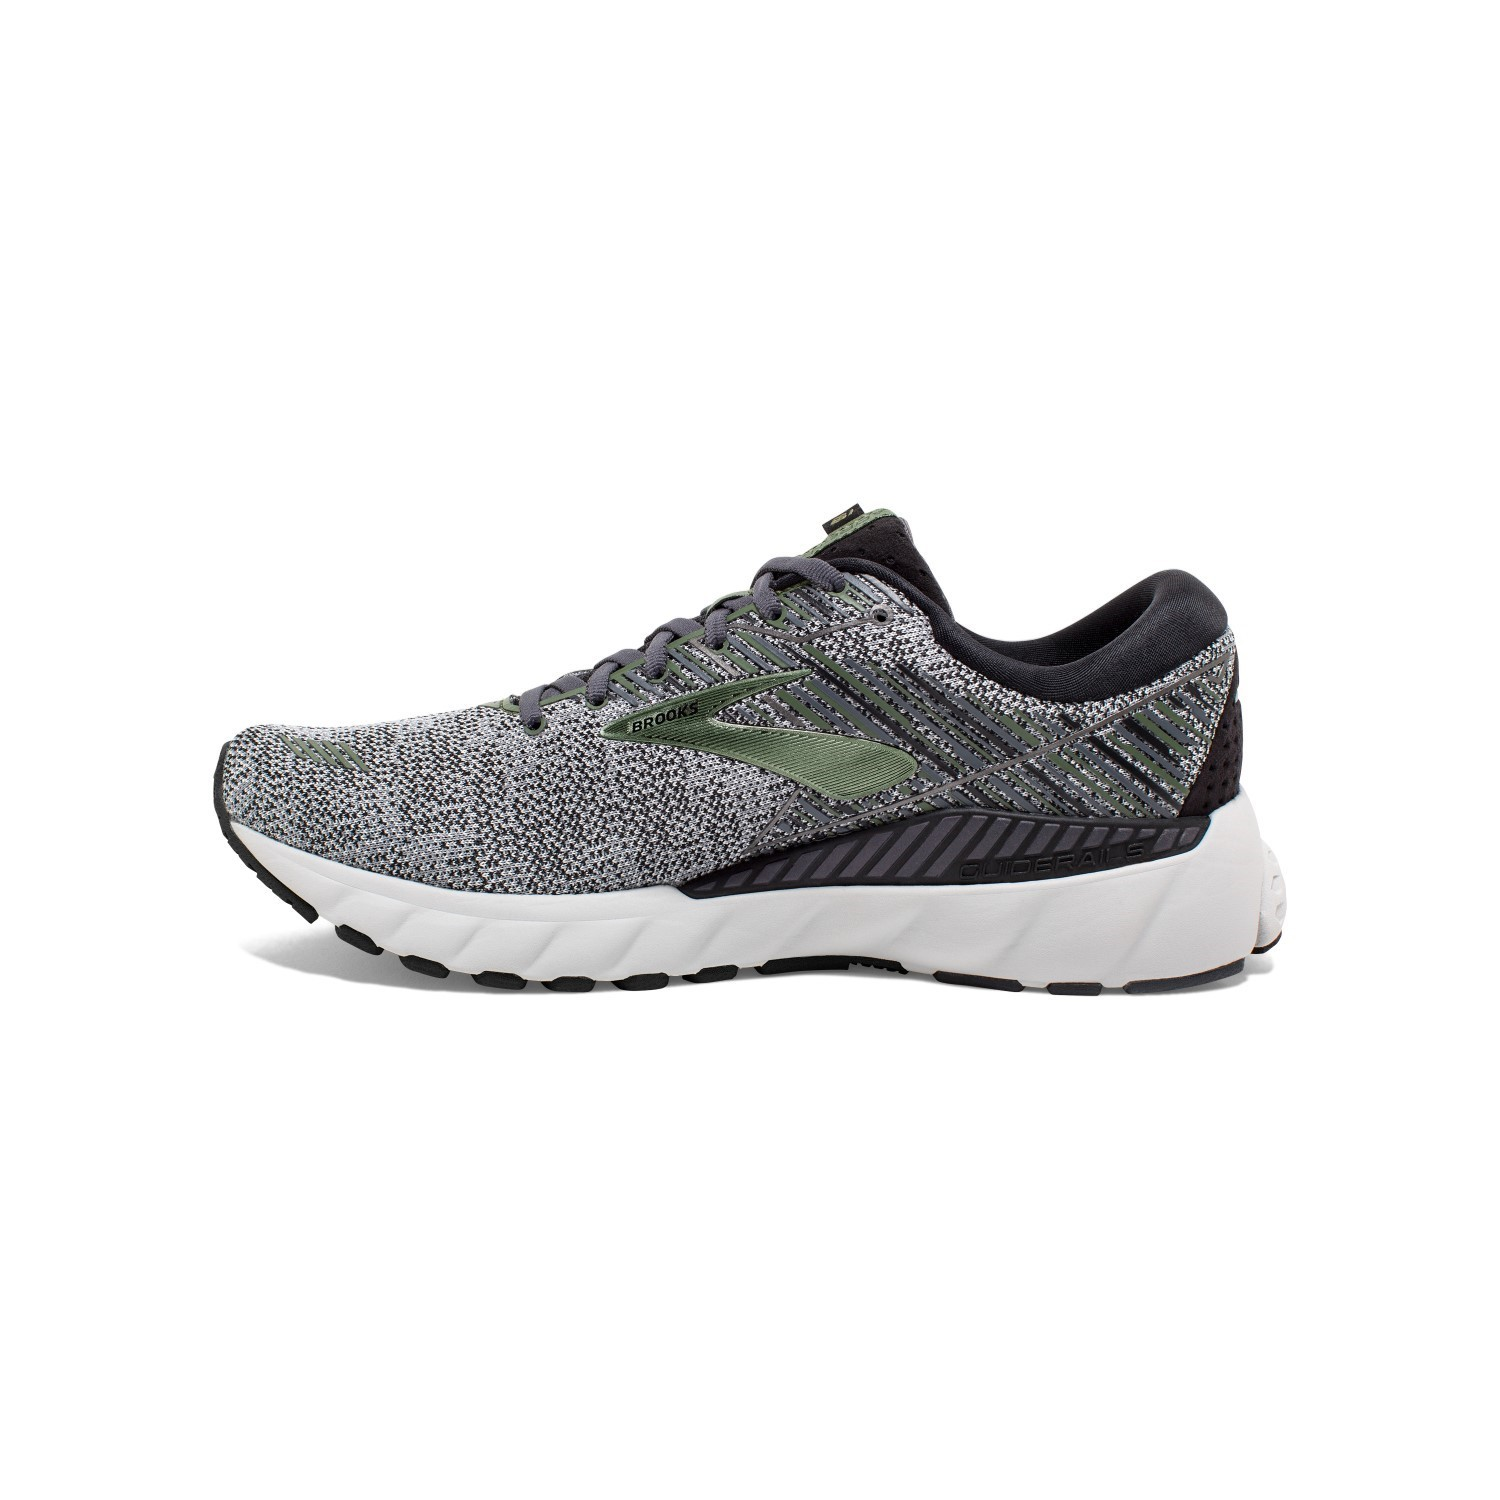 Brooks Adrenaline GTS 19 Knit - Mens Running Shoes - Black